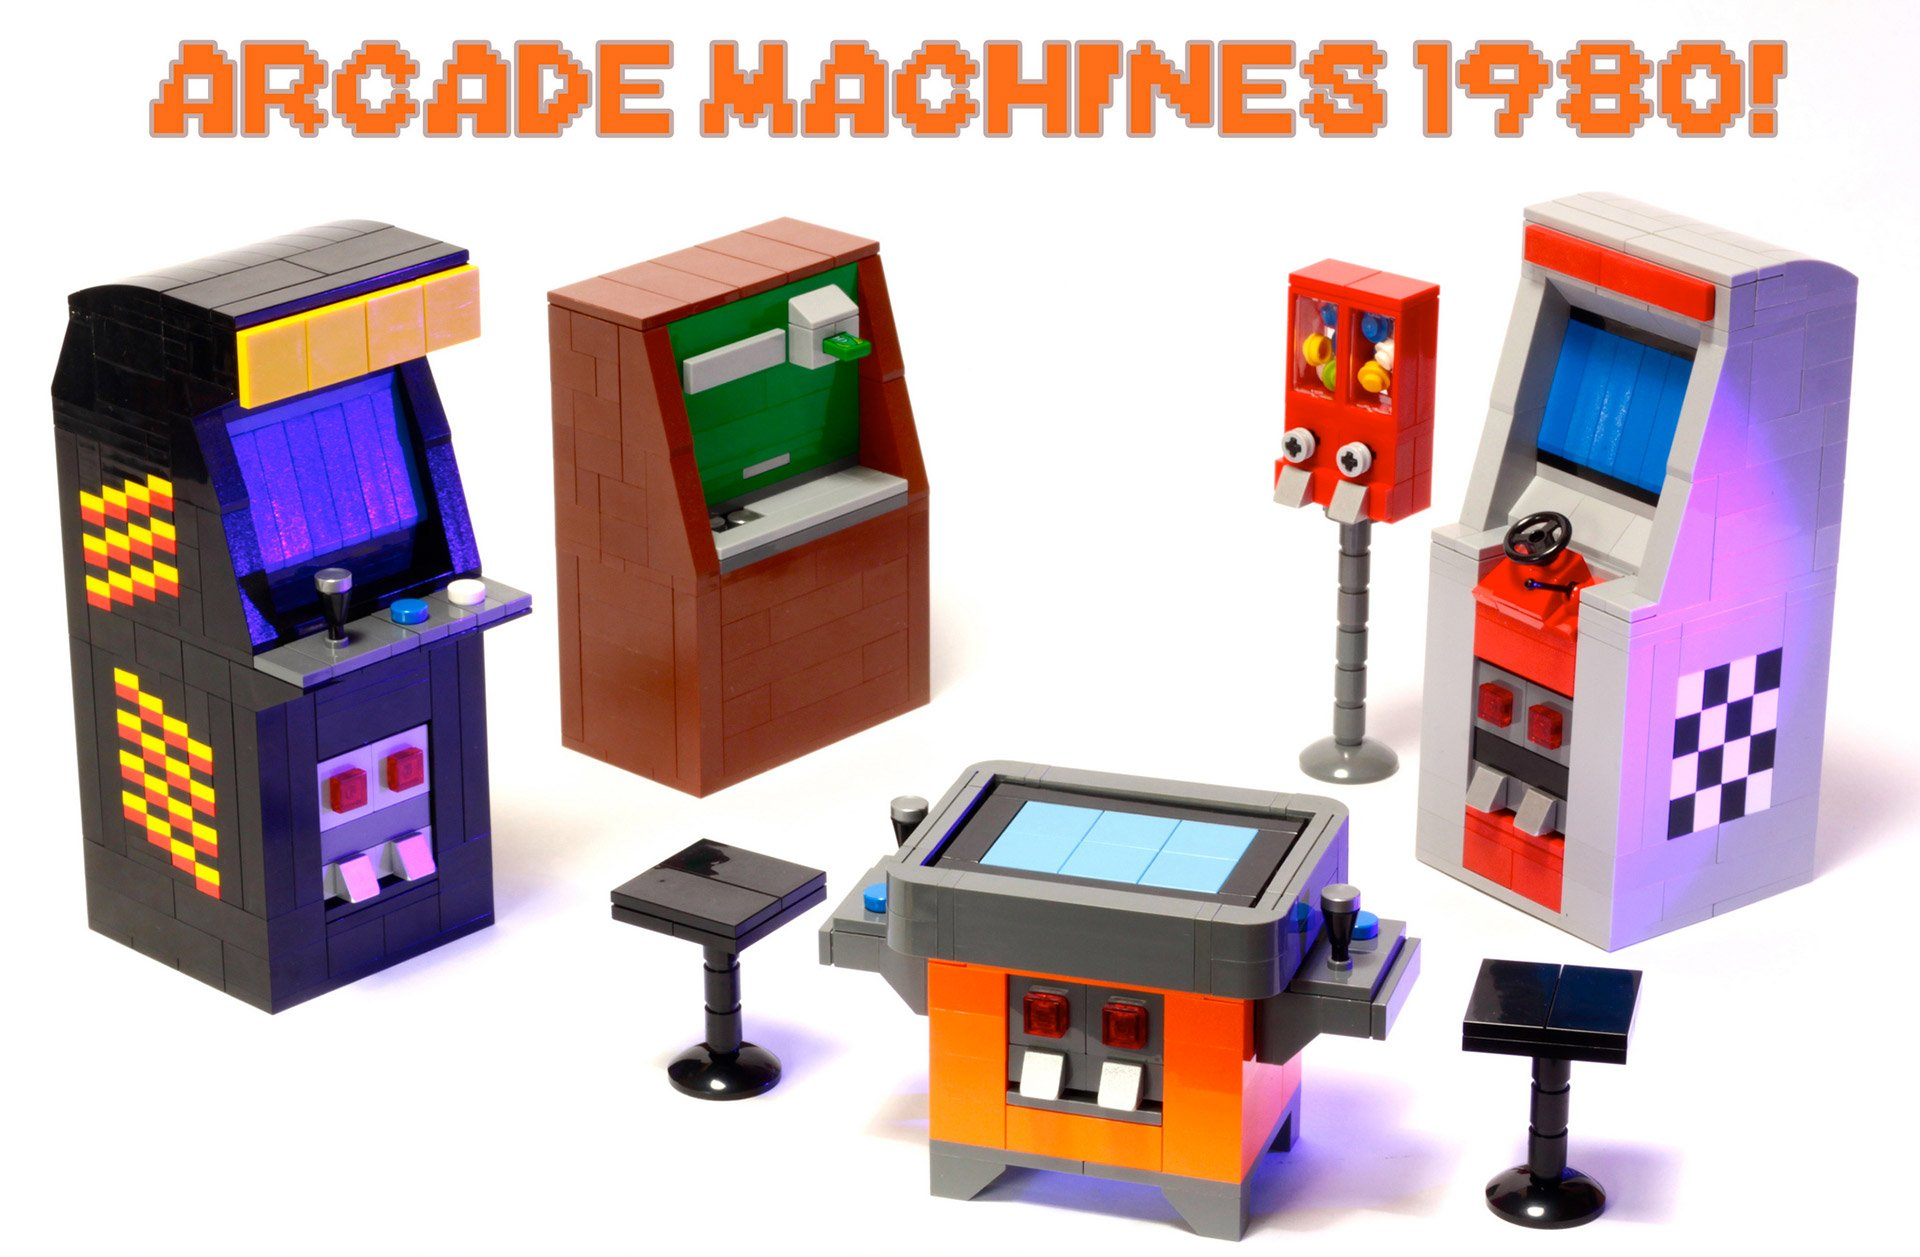 Tiny LEGO Arcade Cabinets Hit Ideas Technabob